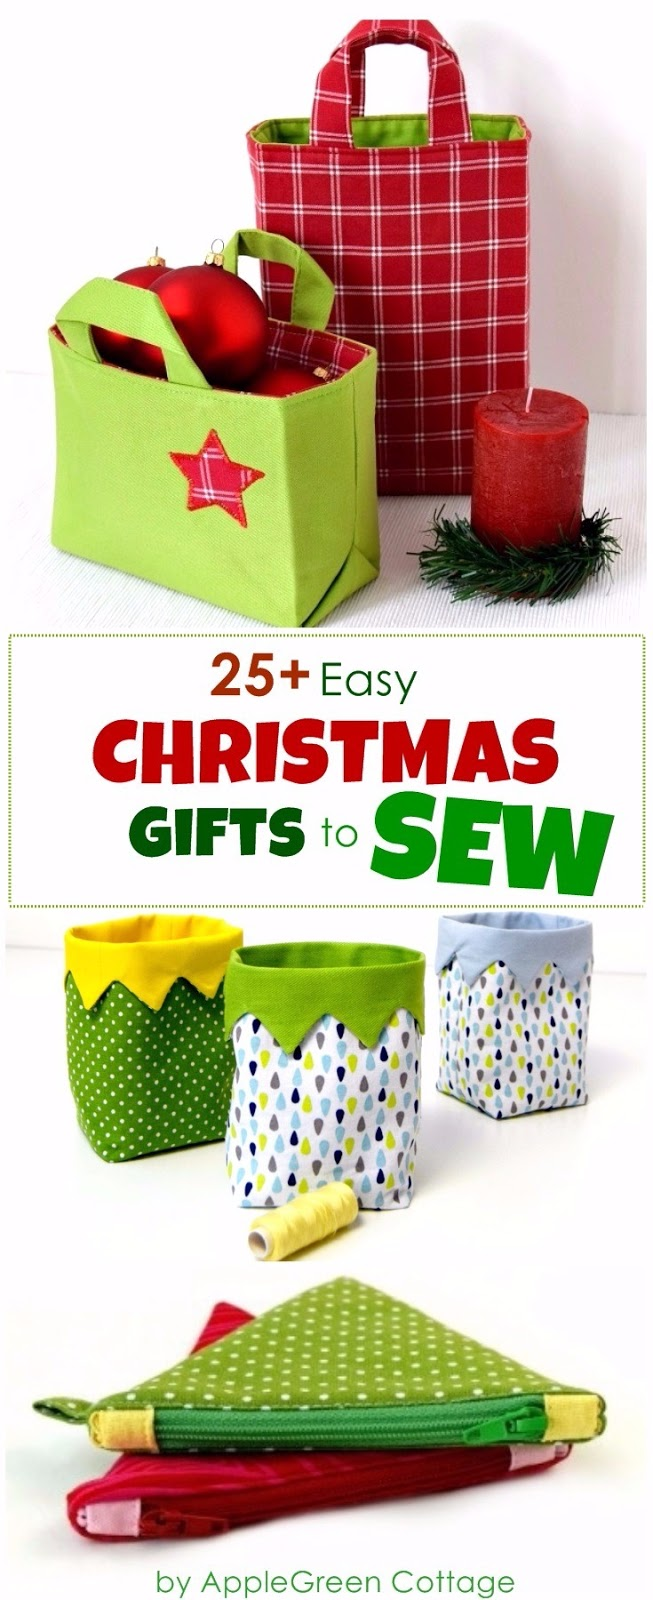 25 Diy Christmas Gifts To Sew With Patterns